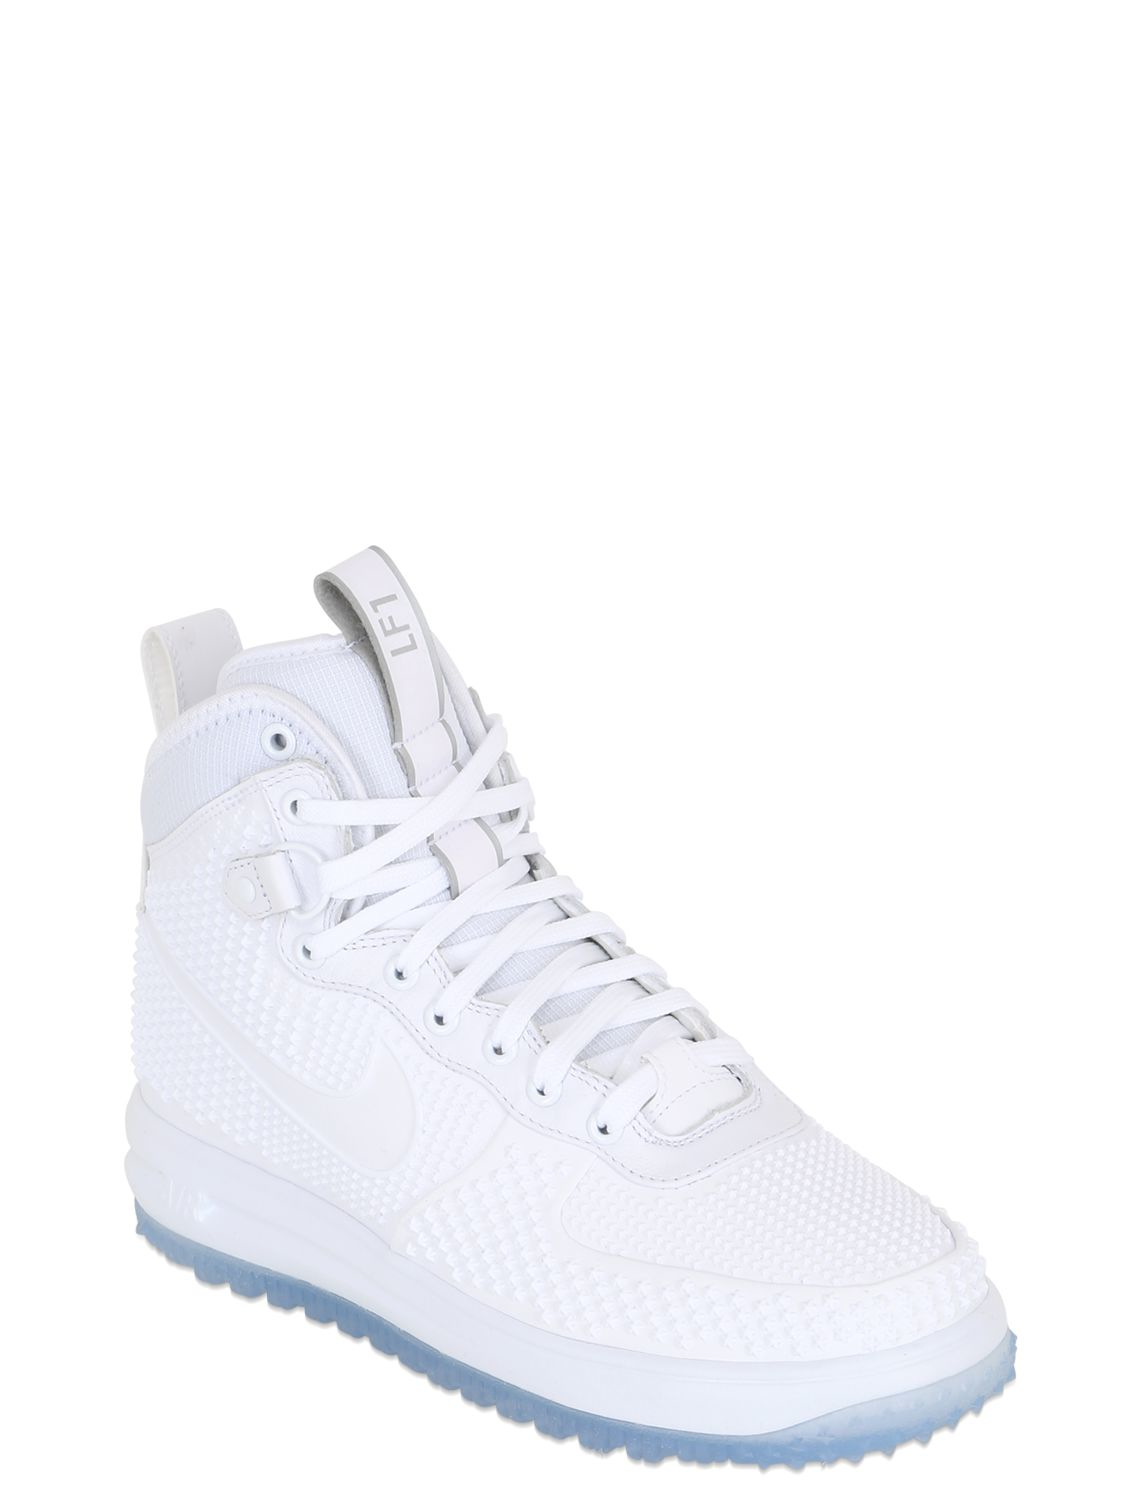 sports shoes 433de 2353c Nike Lunar Force 1 Duckboot Prm Sneakers in White for Men - Lyst